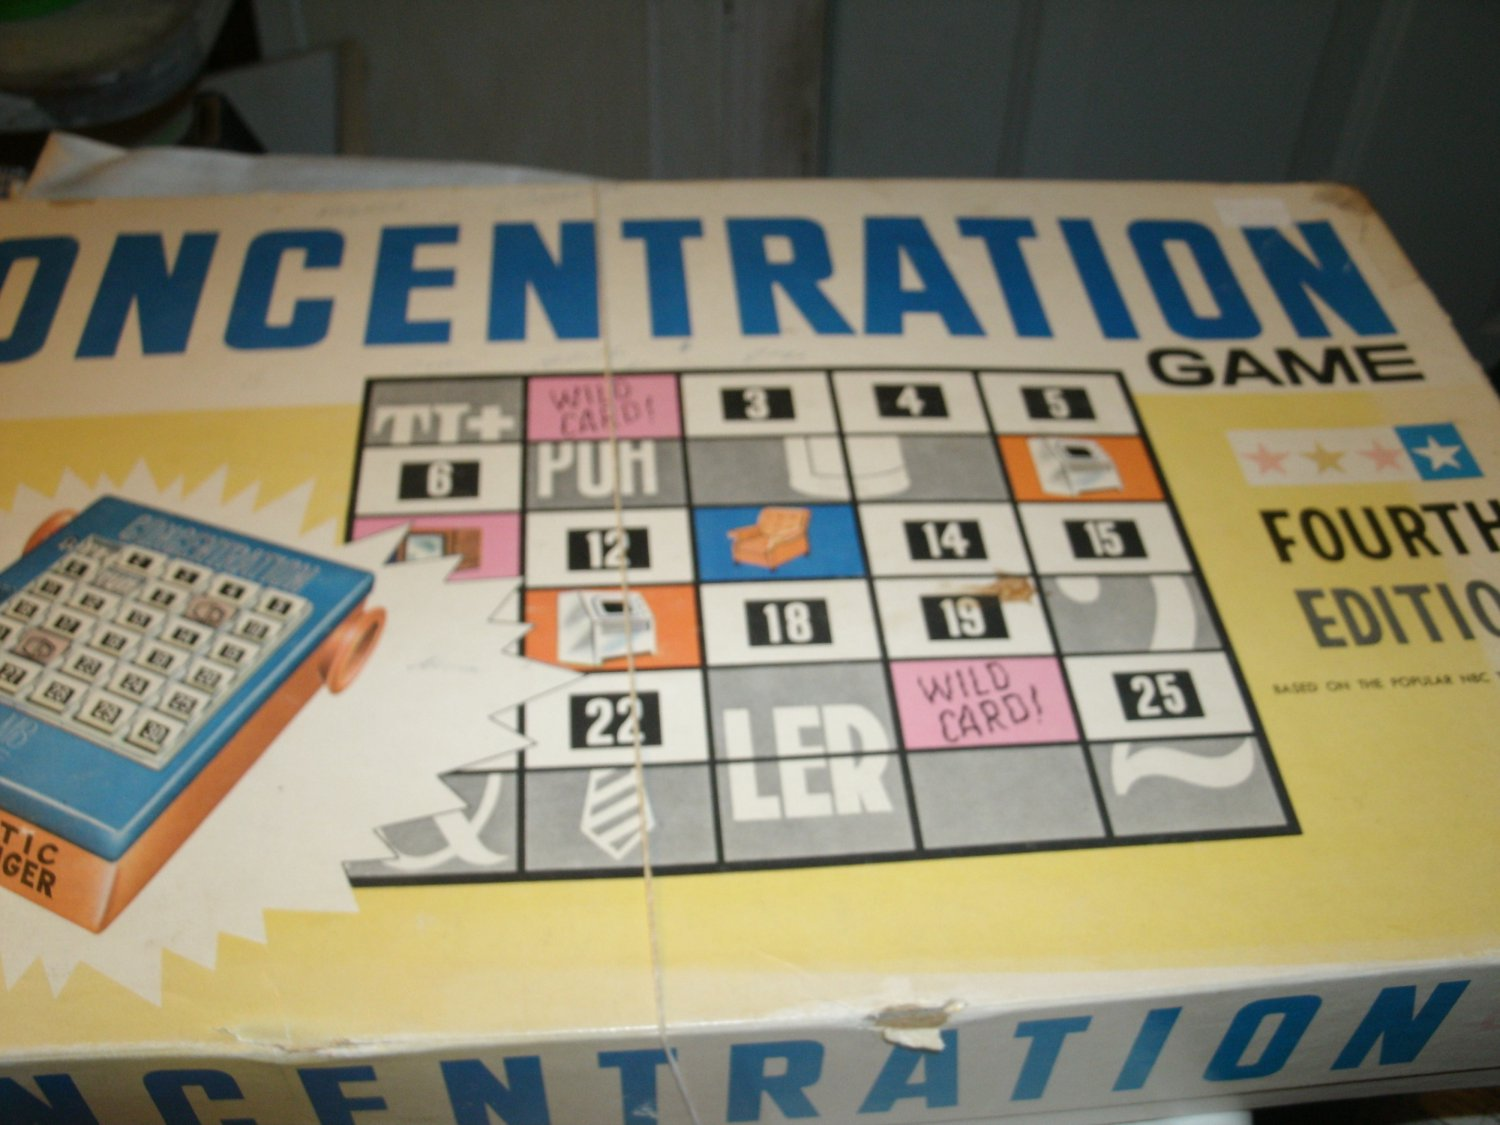 Concentration 4th Edition 1959 Inspired by the TV Game